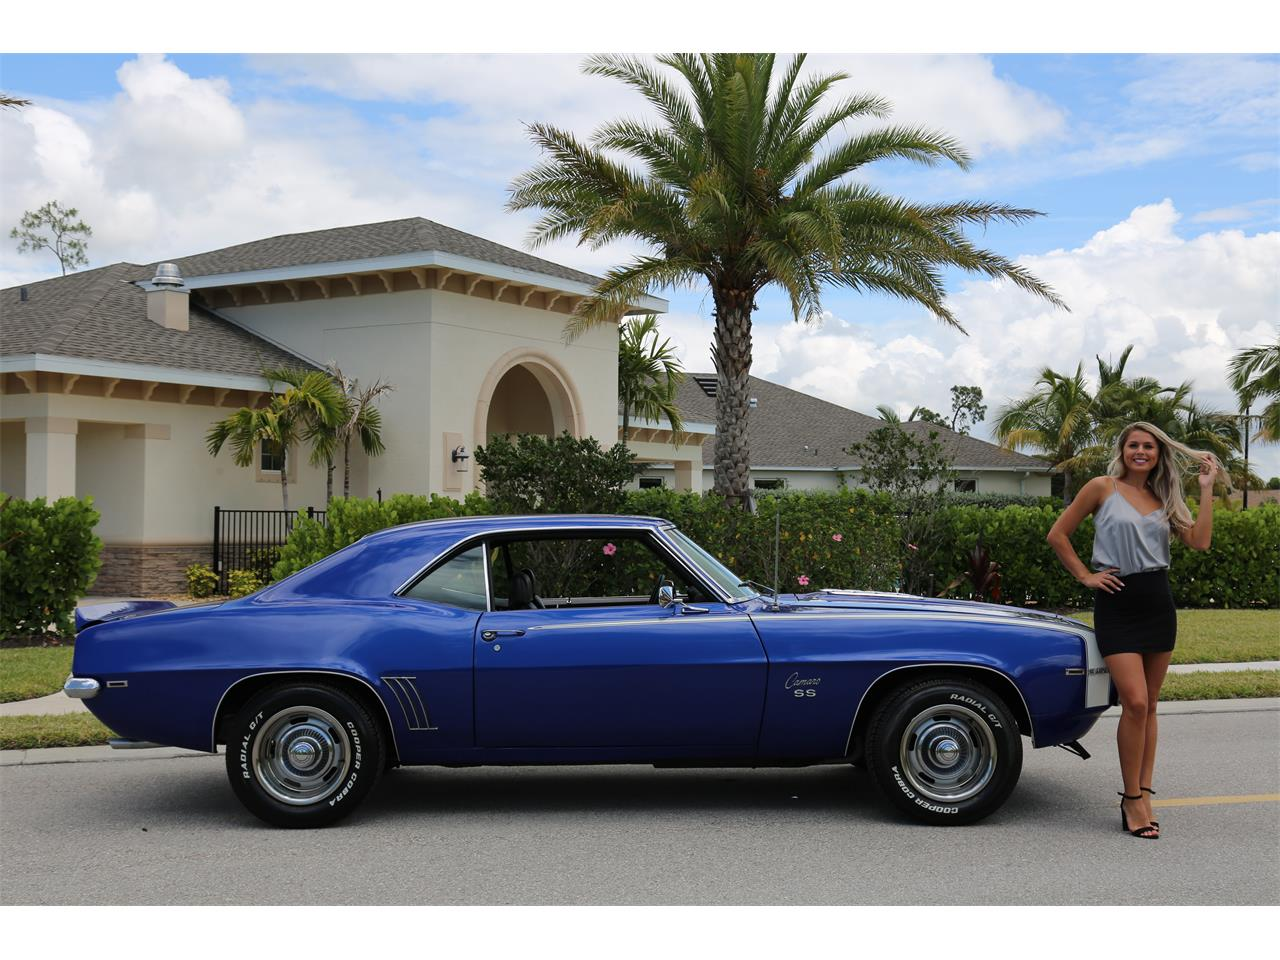 Large Picture of Classic 1969 Camaro SS located in Florida - $31,500.00 - Q2T7